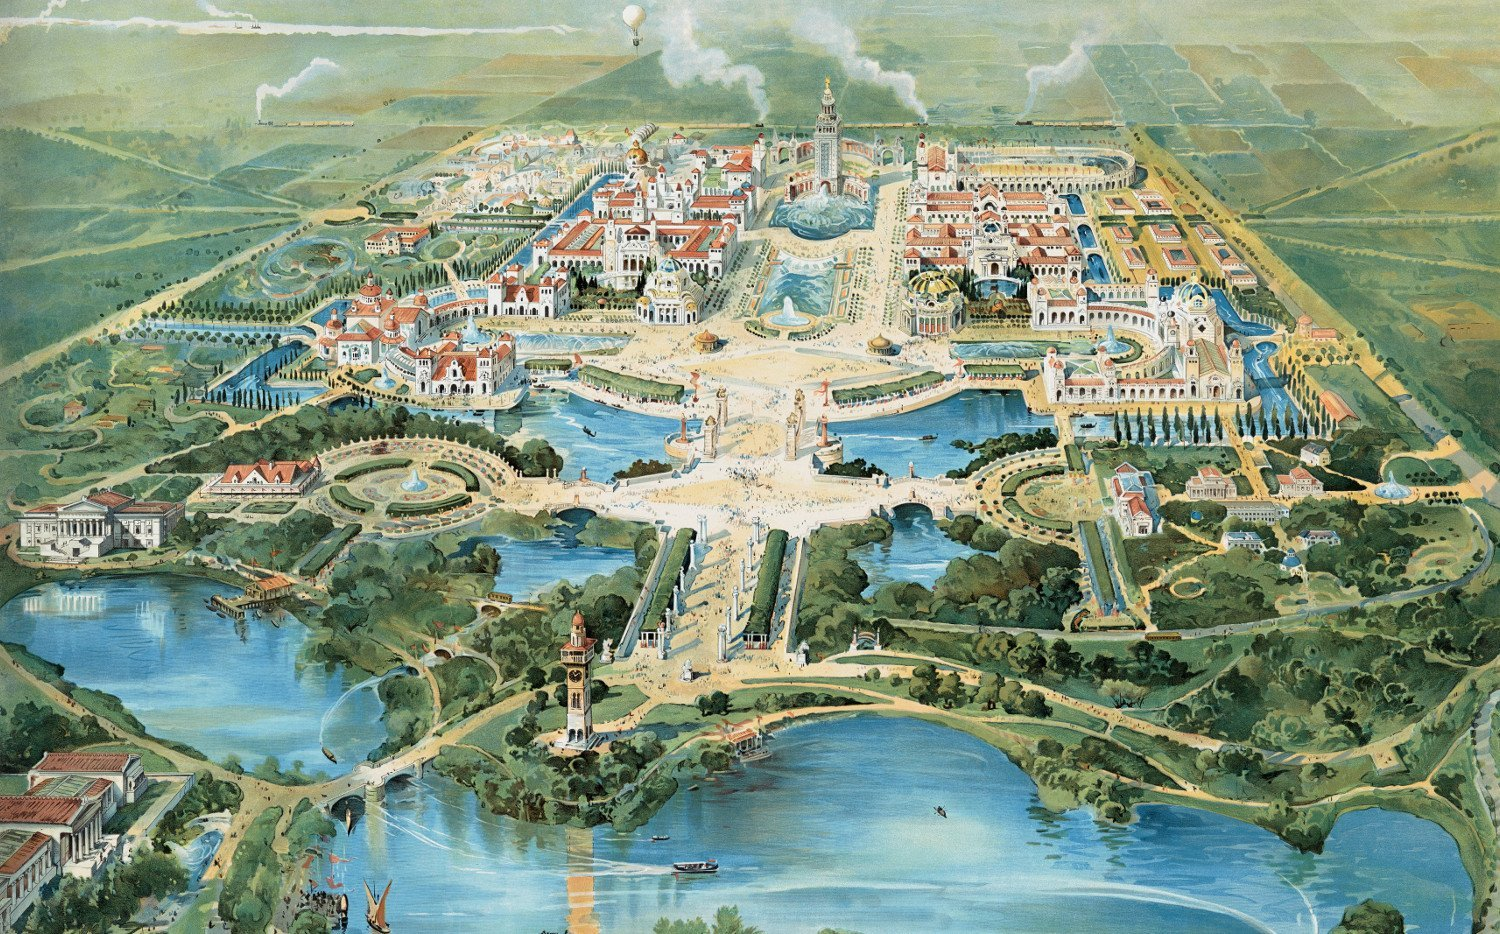 Bird's eye view of Buffalo's Pan-American Exposition of 1901 - KNOWOL